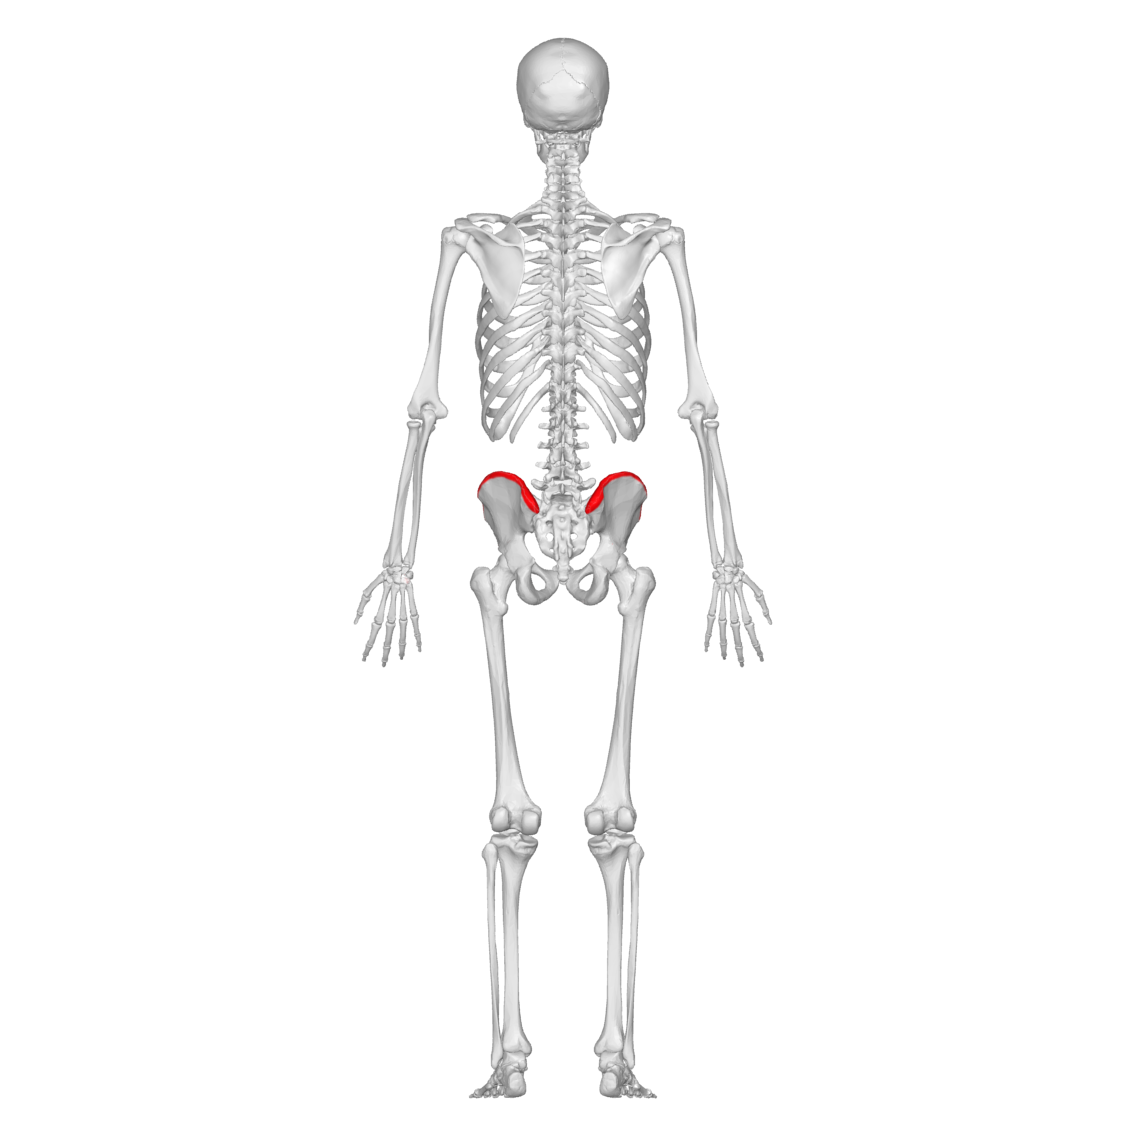 File:Iliac crest 01 - posterior view.png - Wikimedia Commons